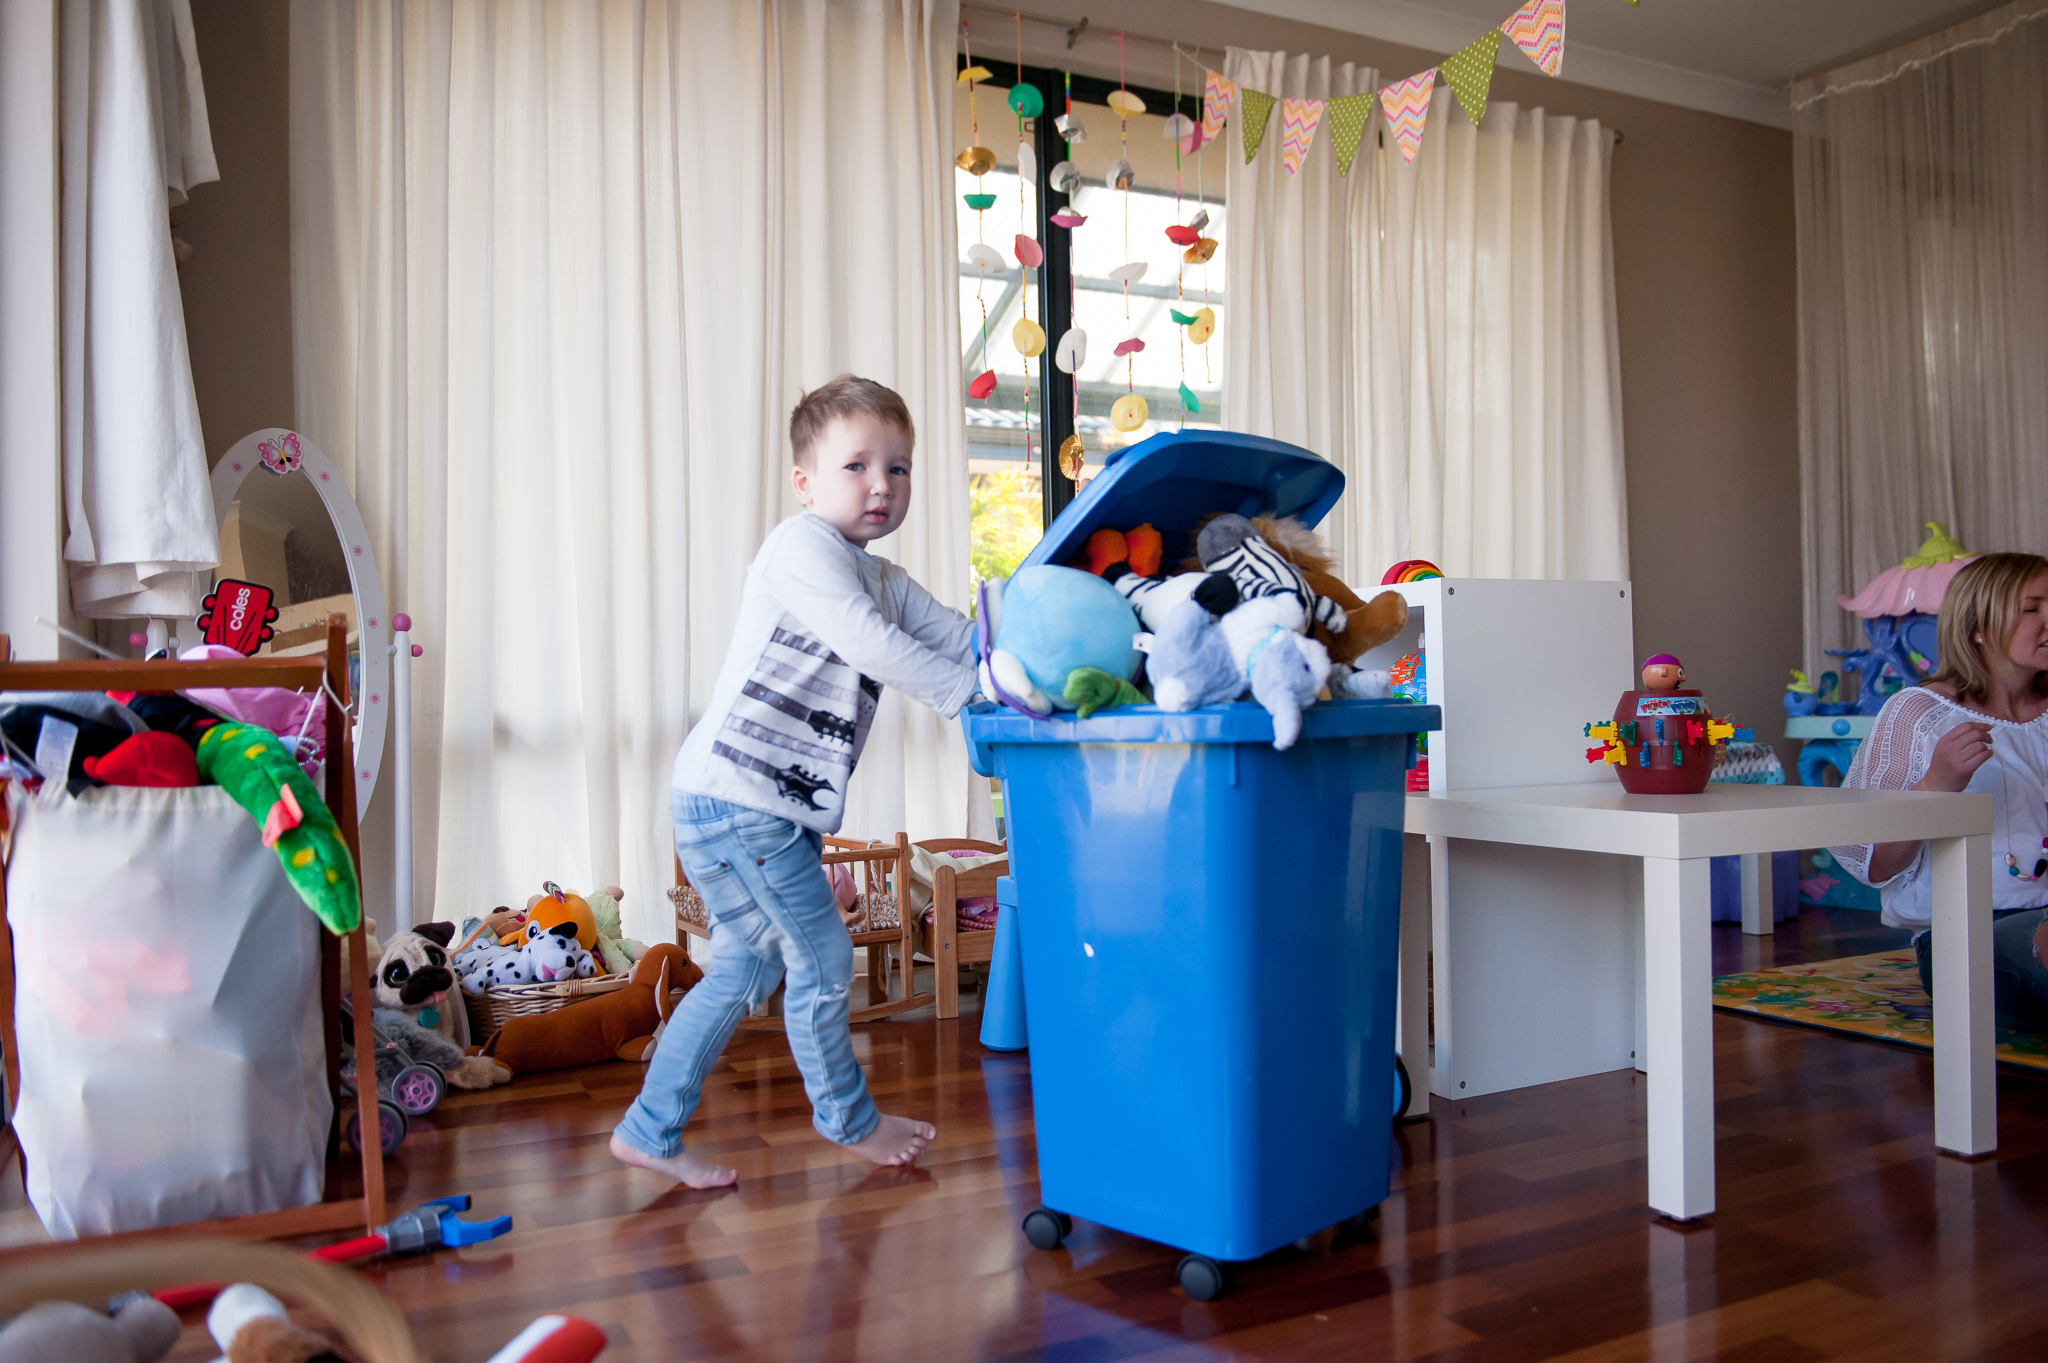 Perth Family Lifestyle Shoot - Finlay 25